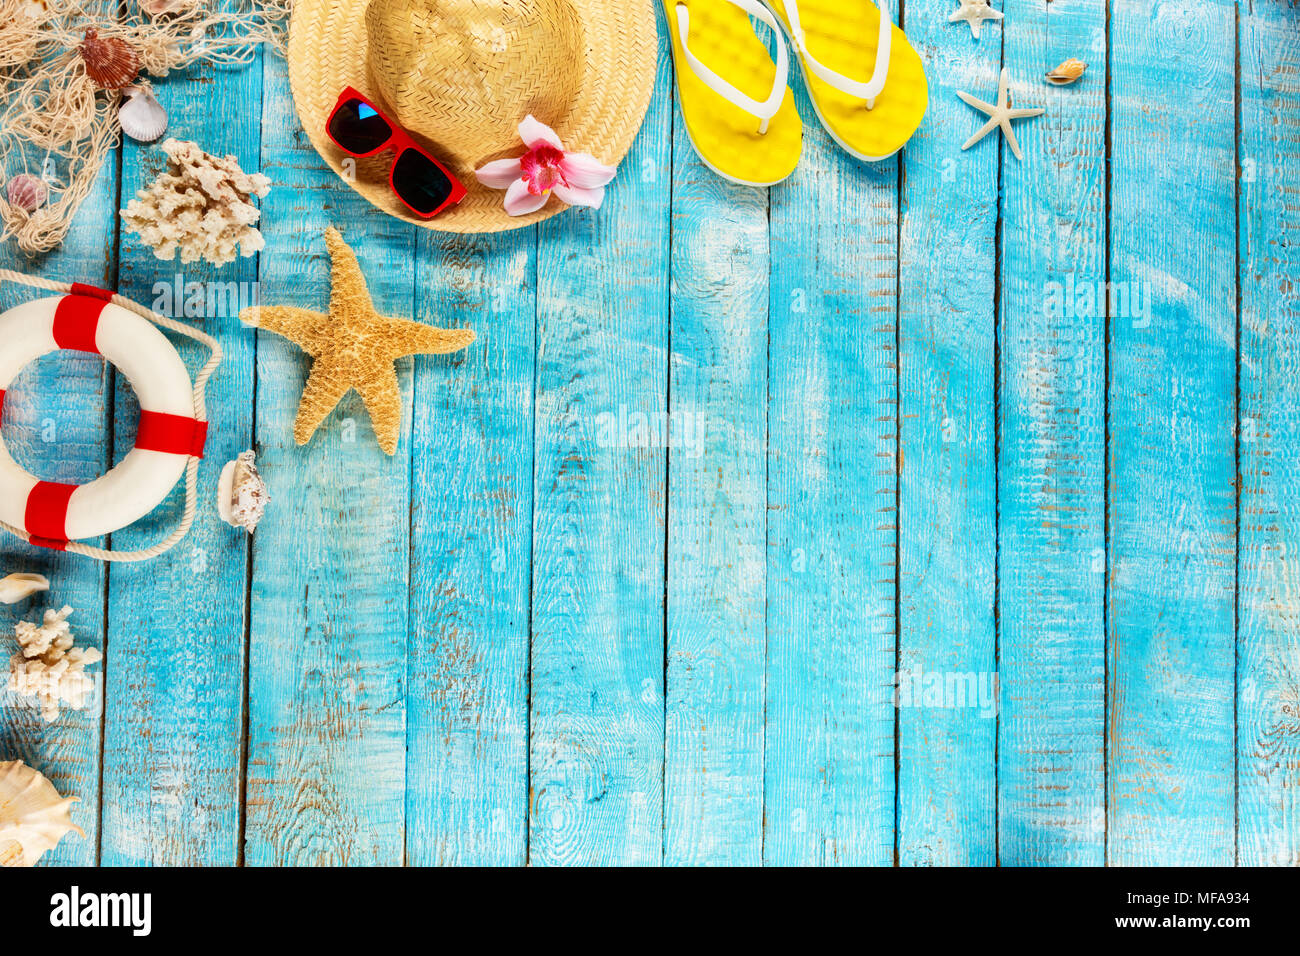 Beach Accessories Placed On Blue Wooden Planks Top View